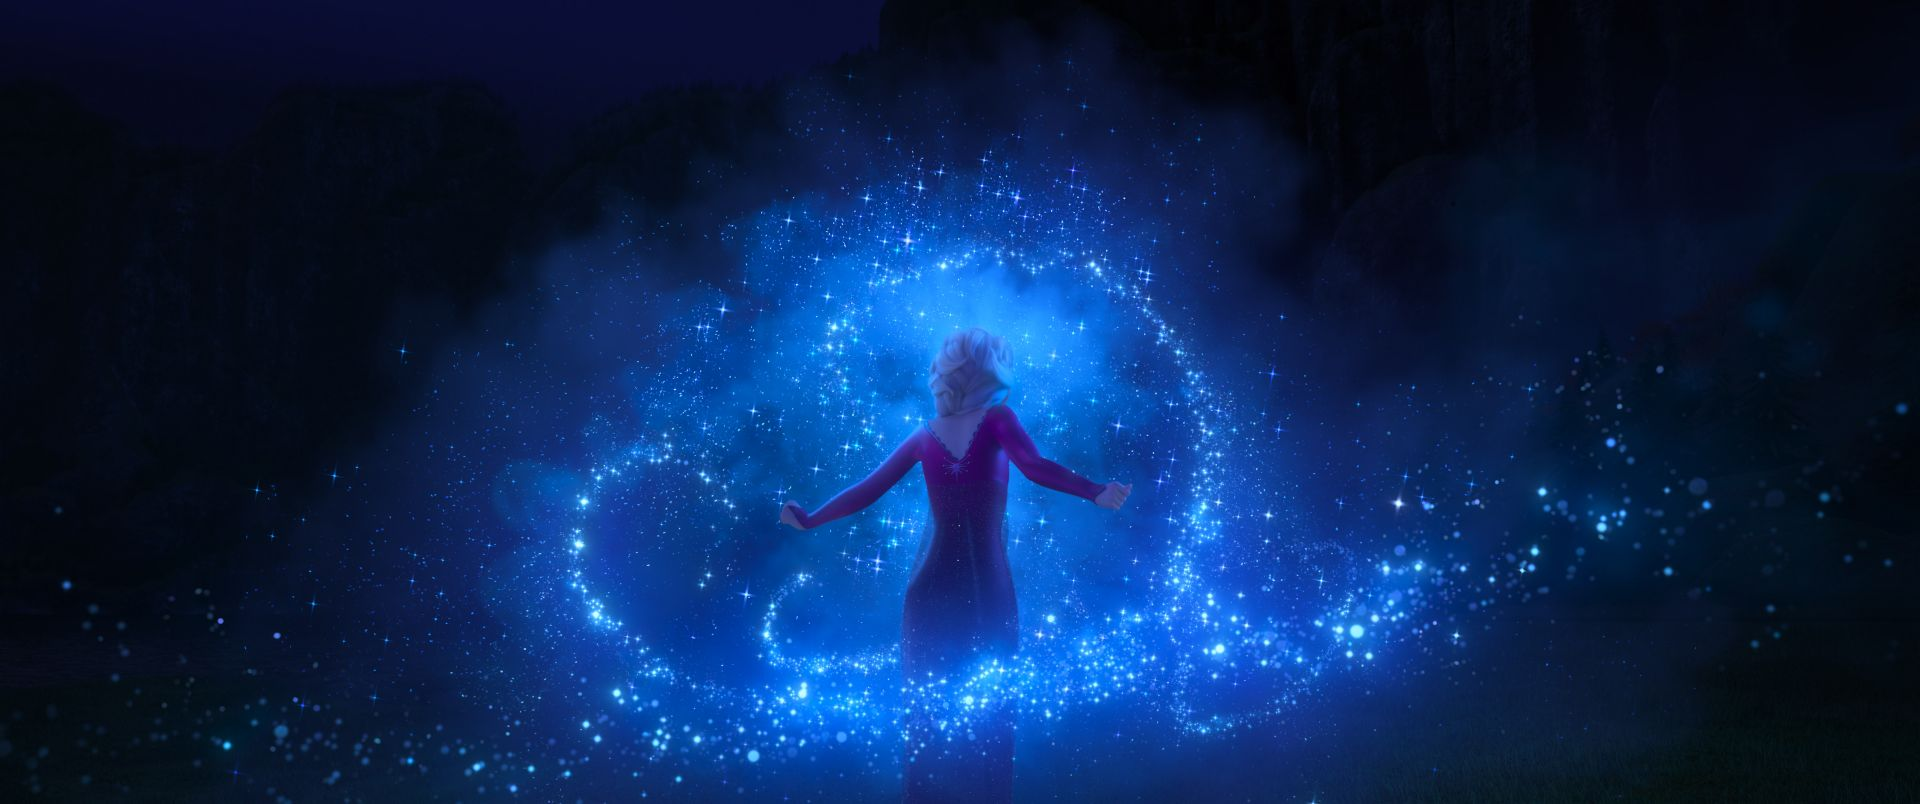 Elsa's powers in Frozen 2 and movie review